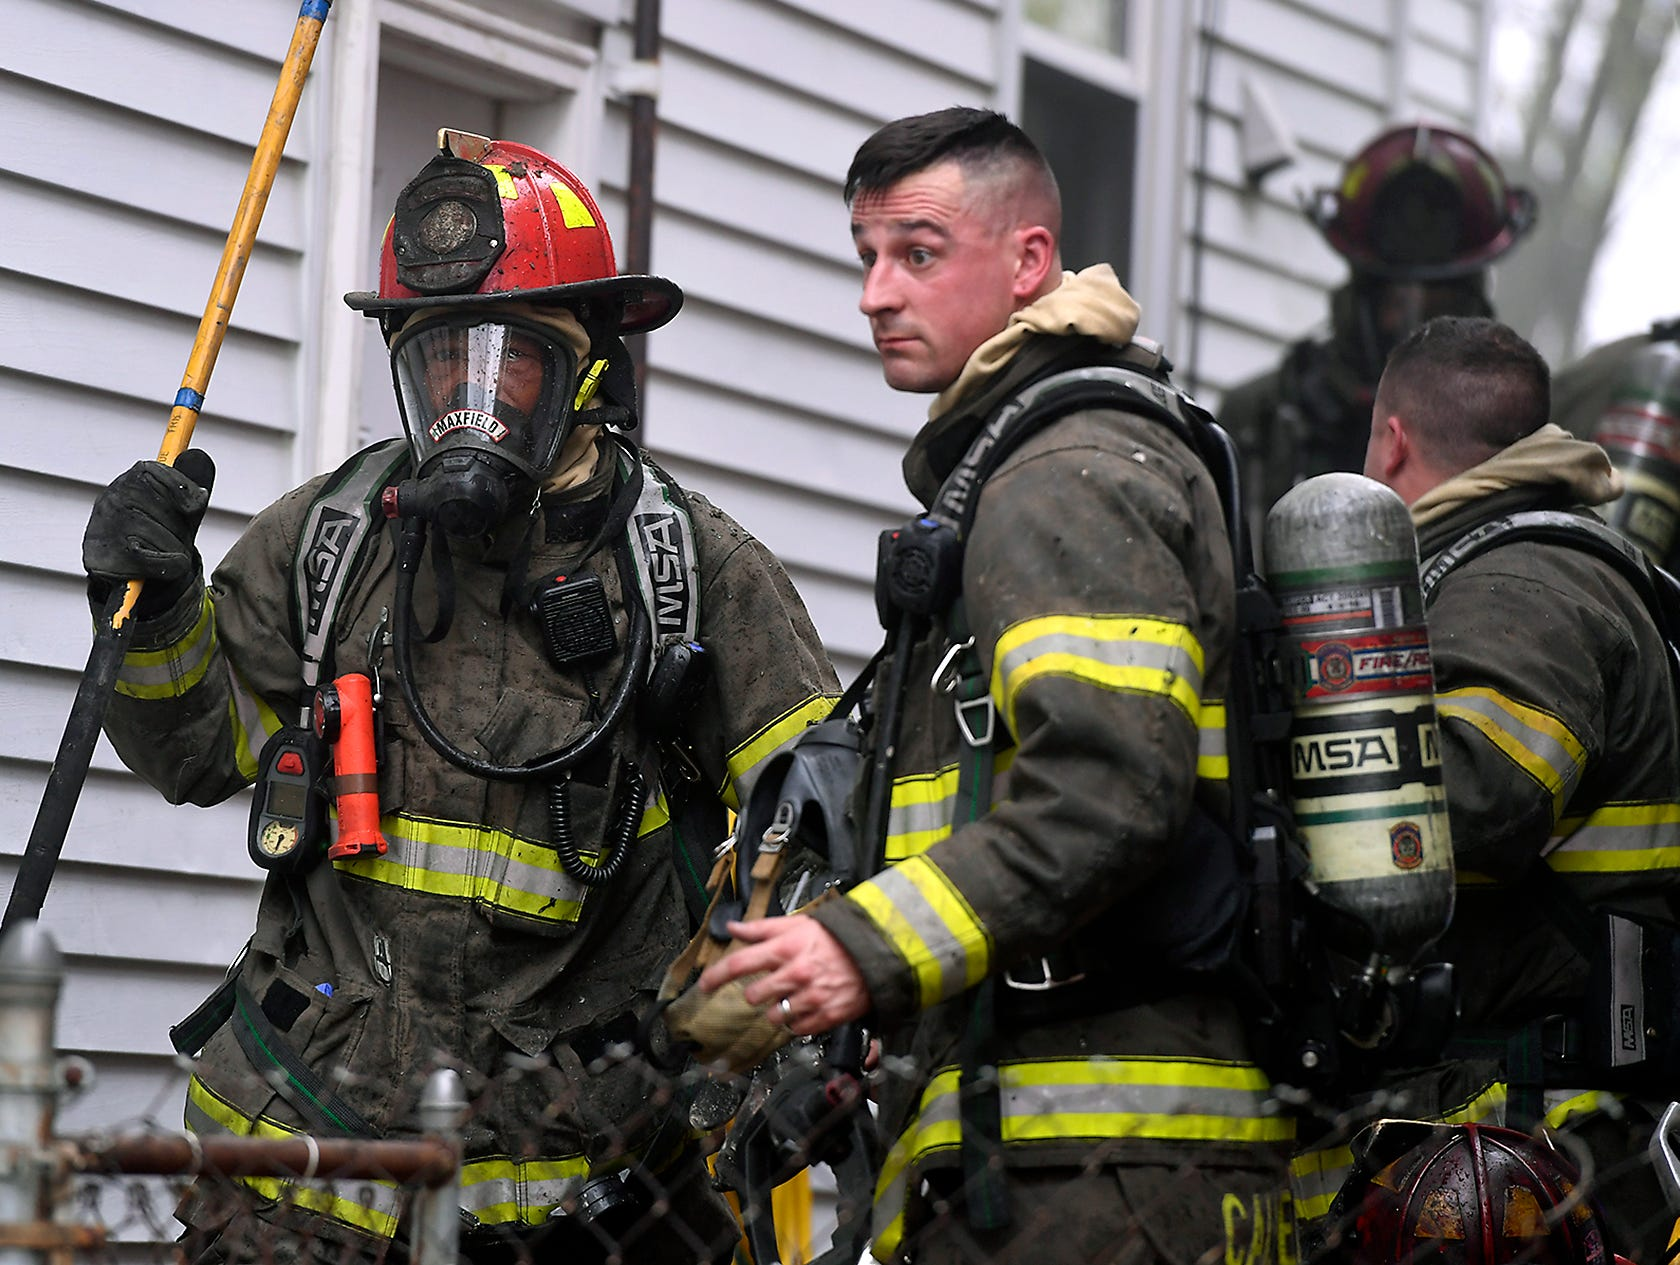 Firefighters quickly doused a blaze in a home in the 600 block of S. Pershing Ave., Sunday, April 14, 2019. The fire was contained to a first floor laundry room. 